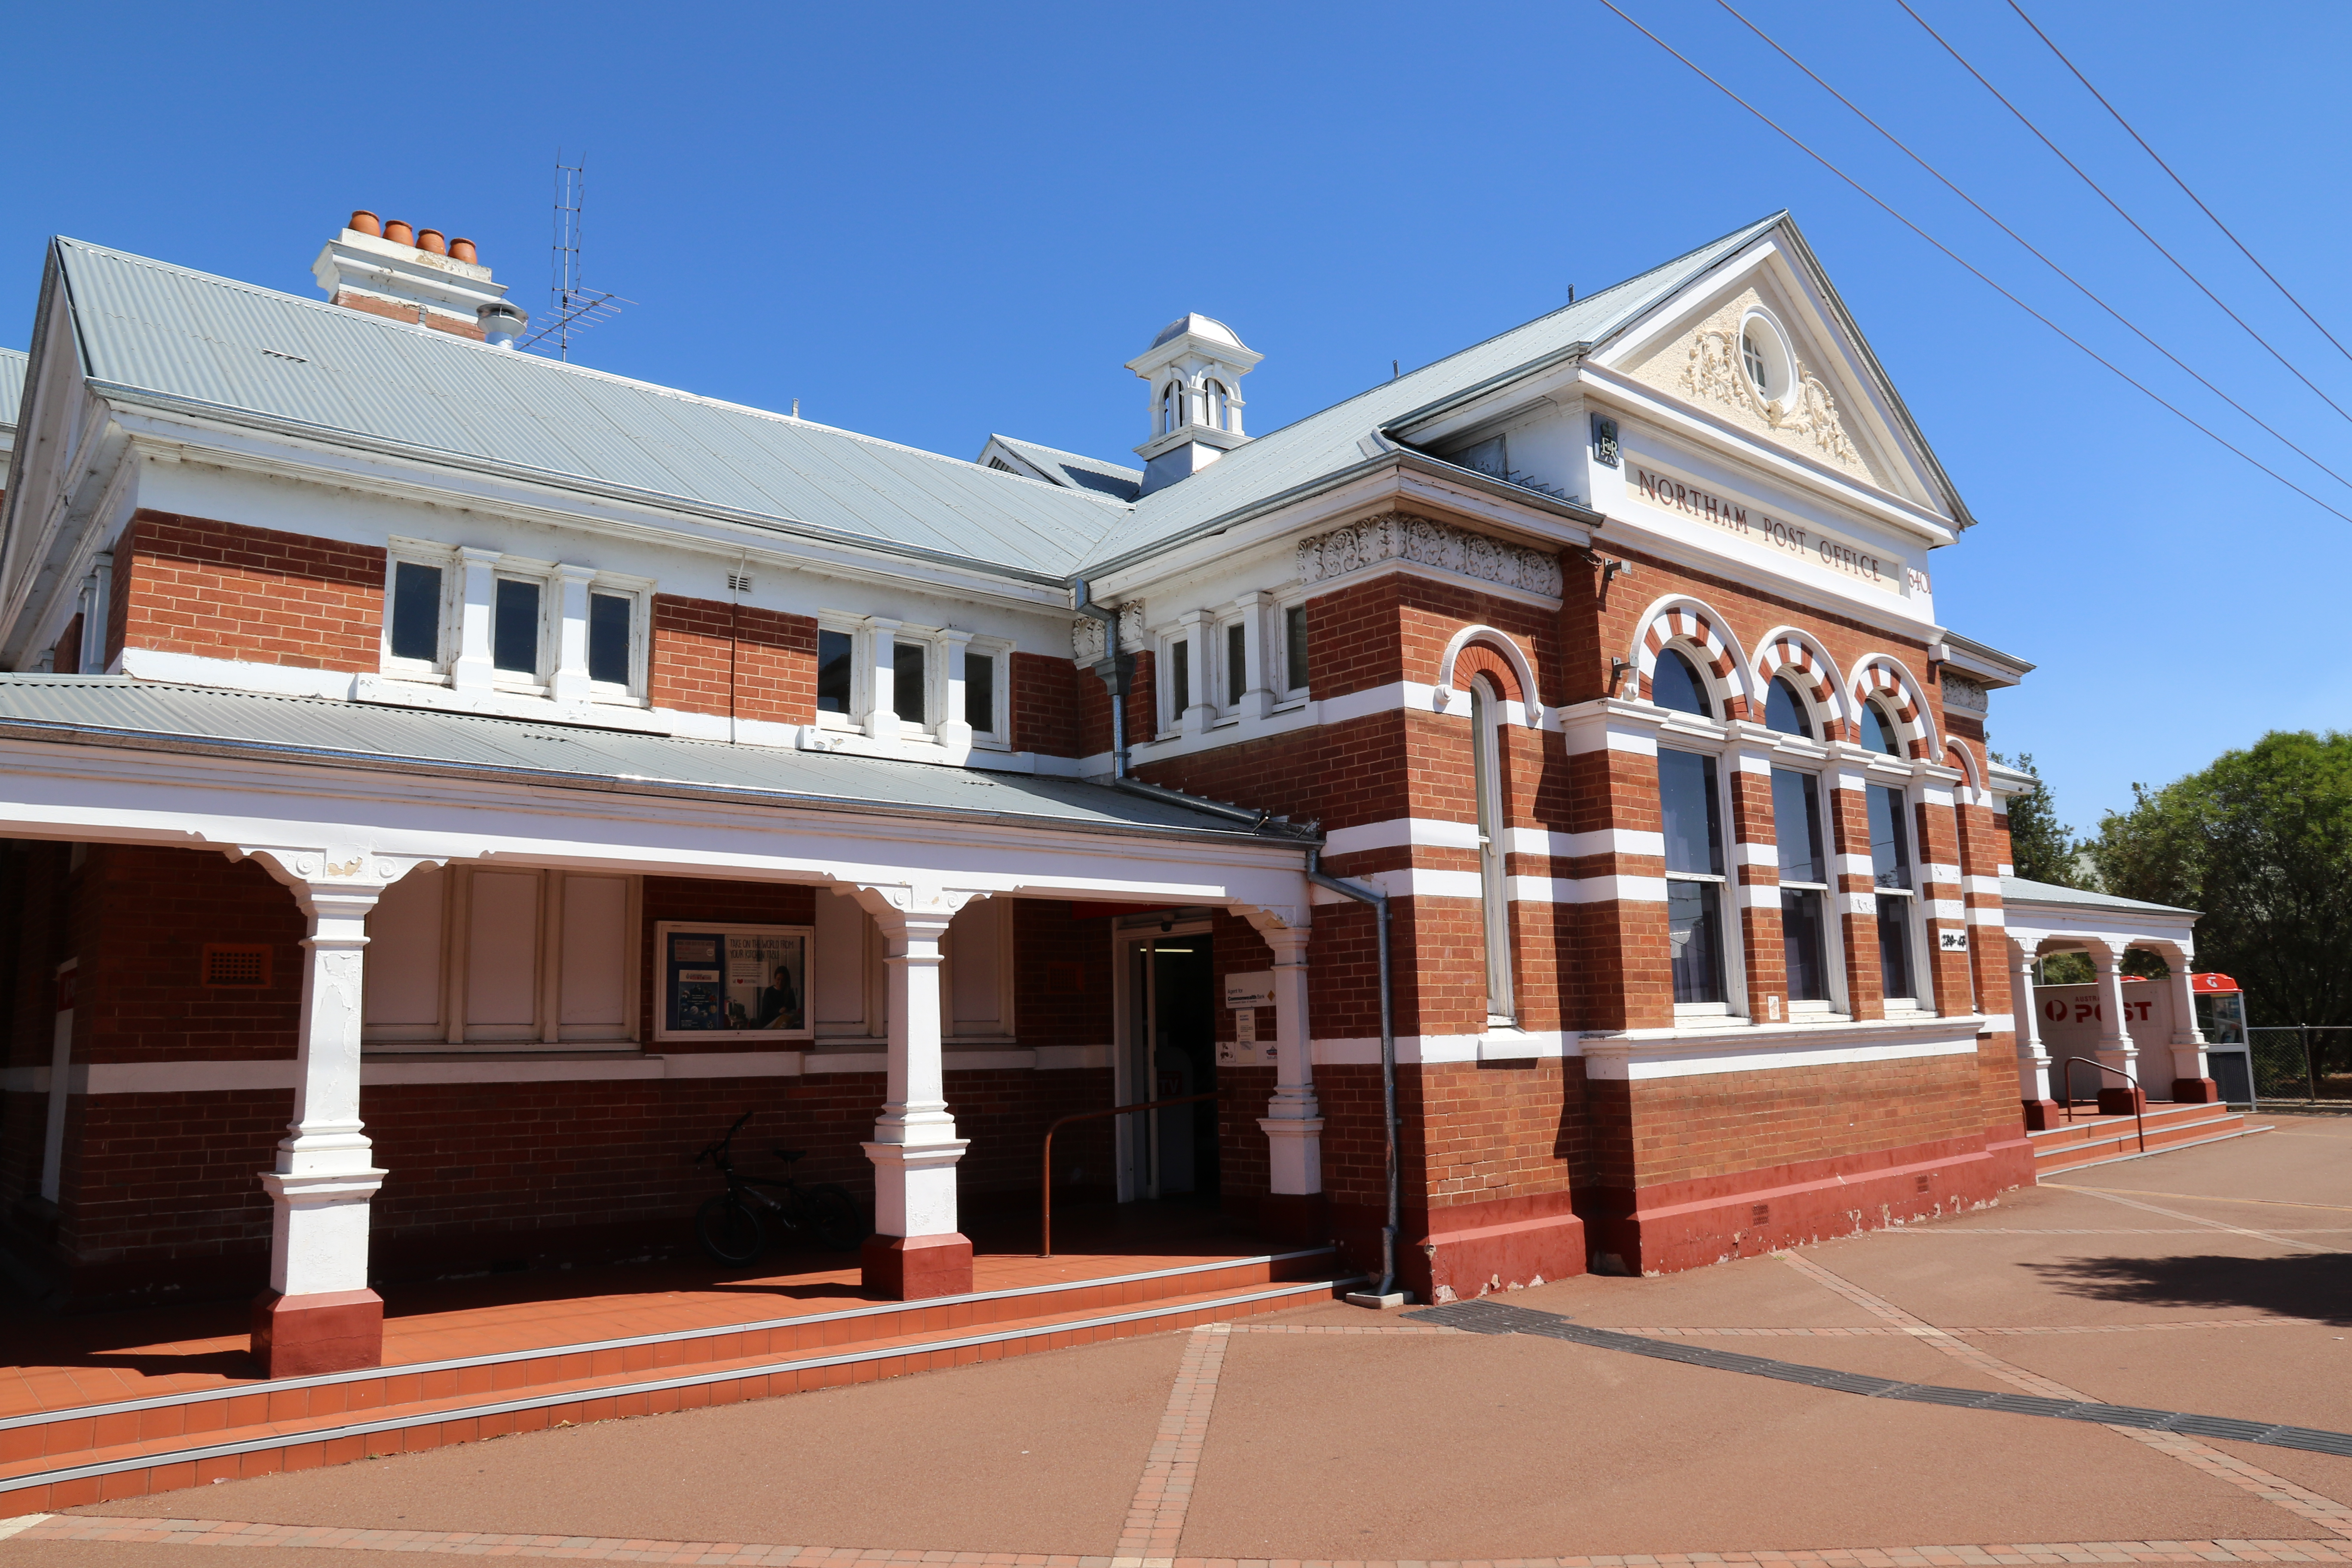 Northam Post Office & Quarters - a brick and iron building designed in the Federation Free Style architecture. Built circa 1909